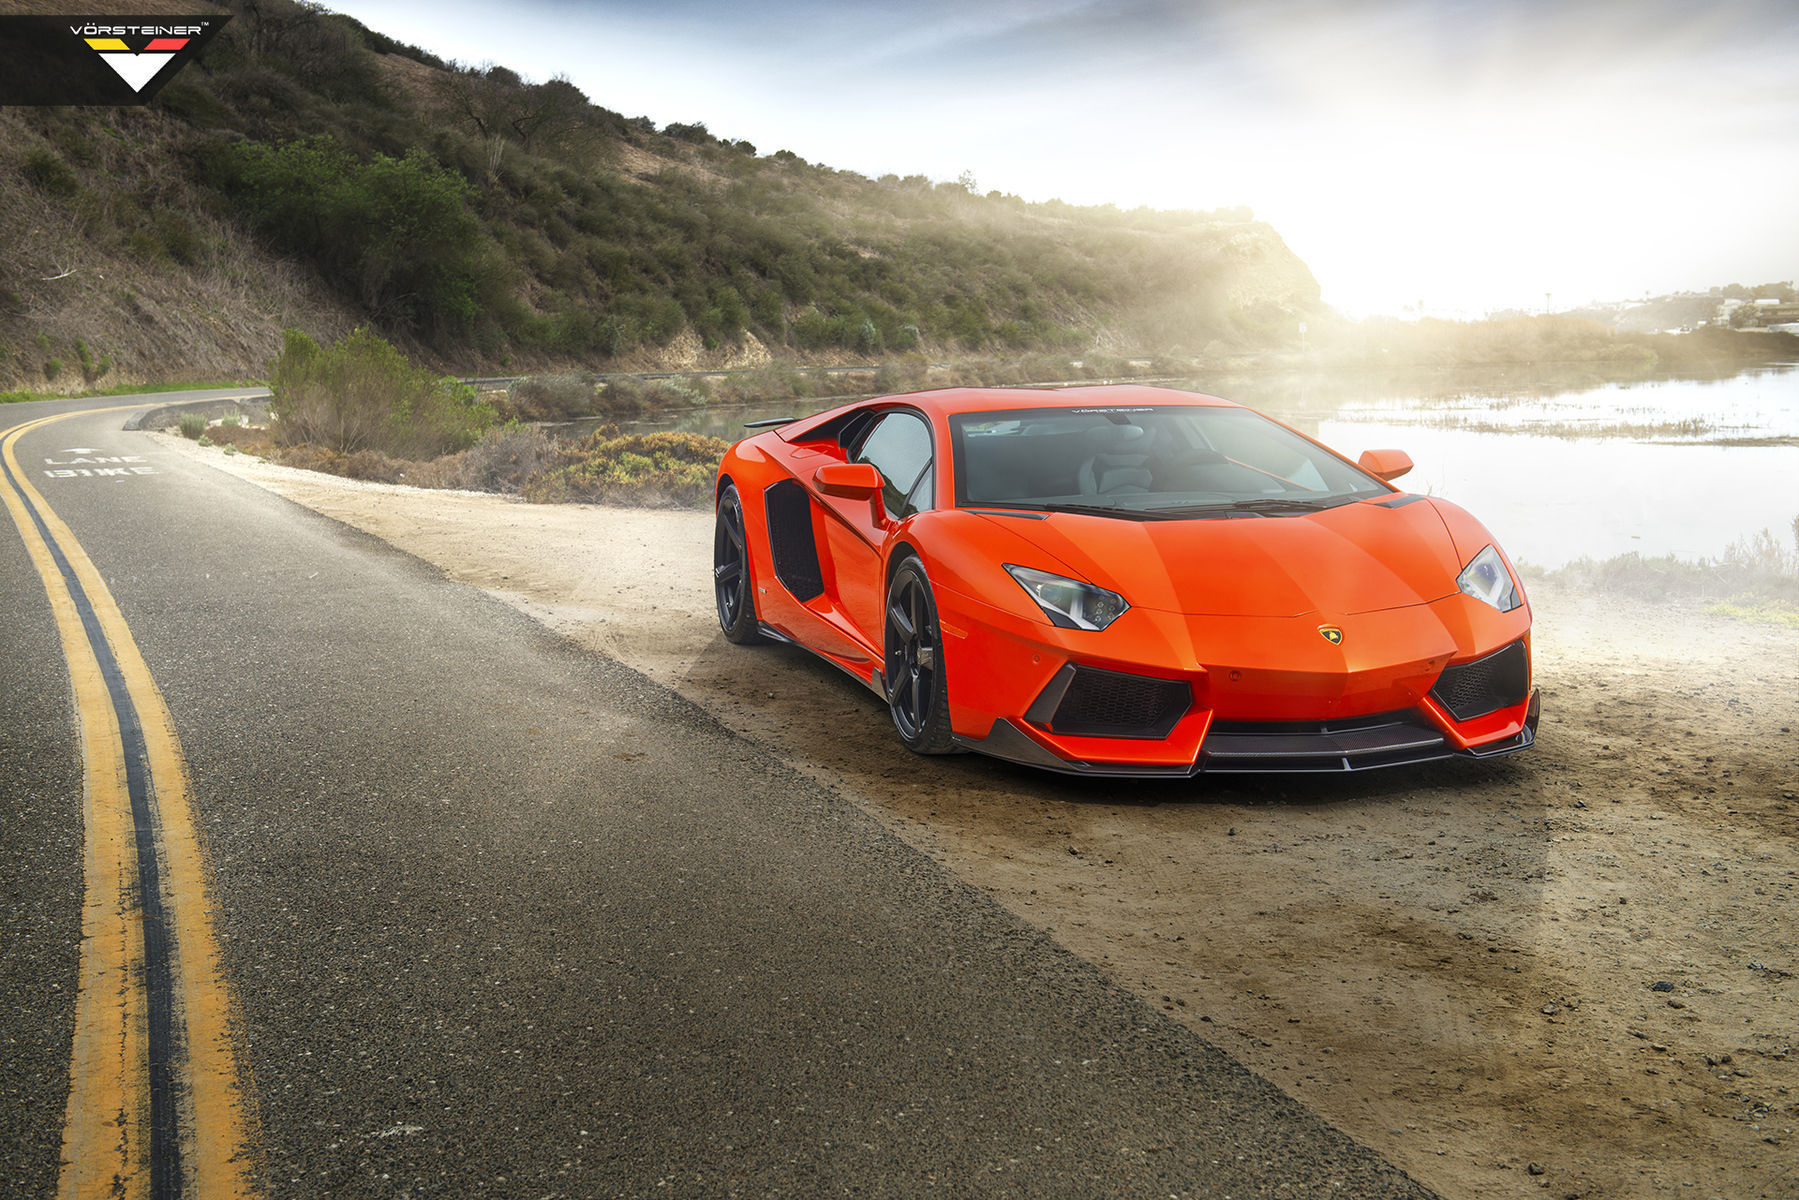 2014 Lamborghini Aventador | Vorsteiner AVENTADOR-V for the Coupe / Roadster